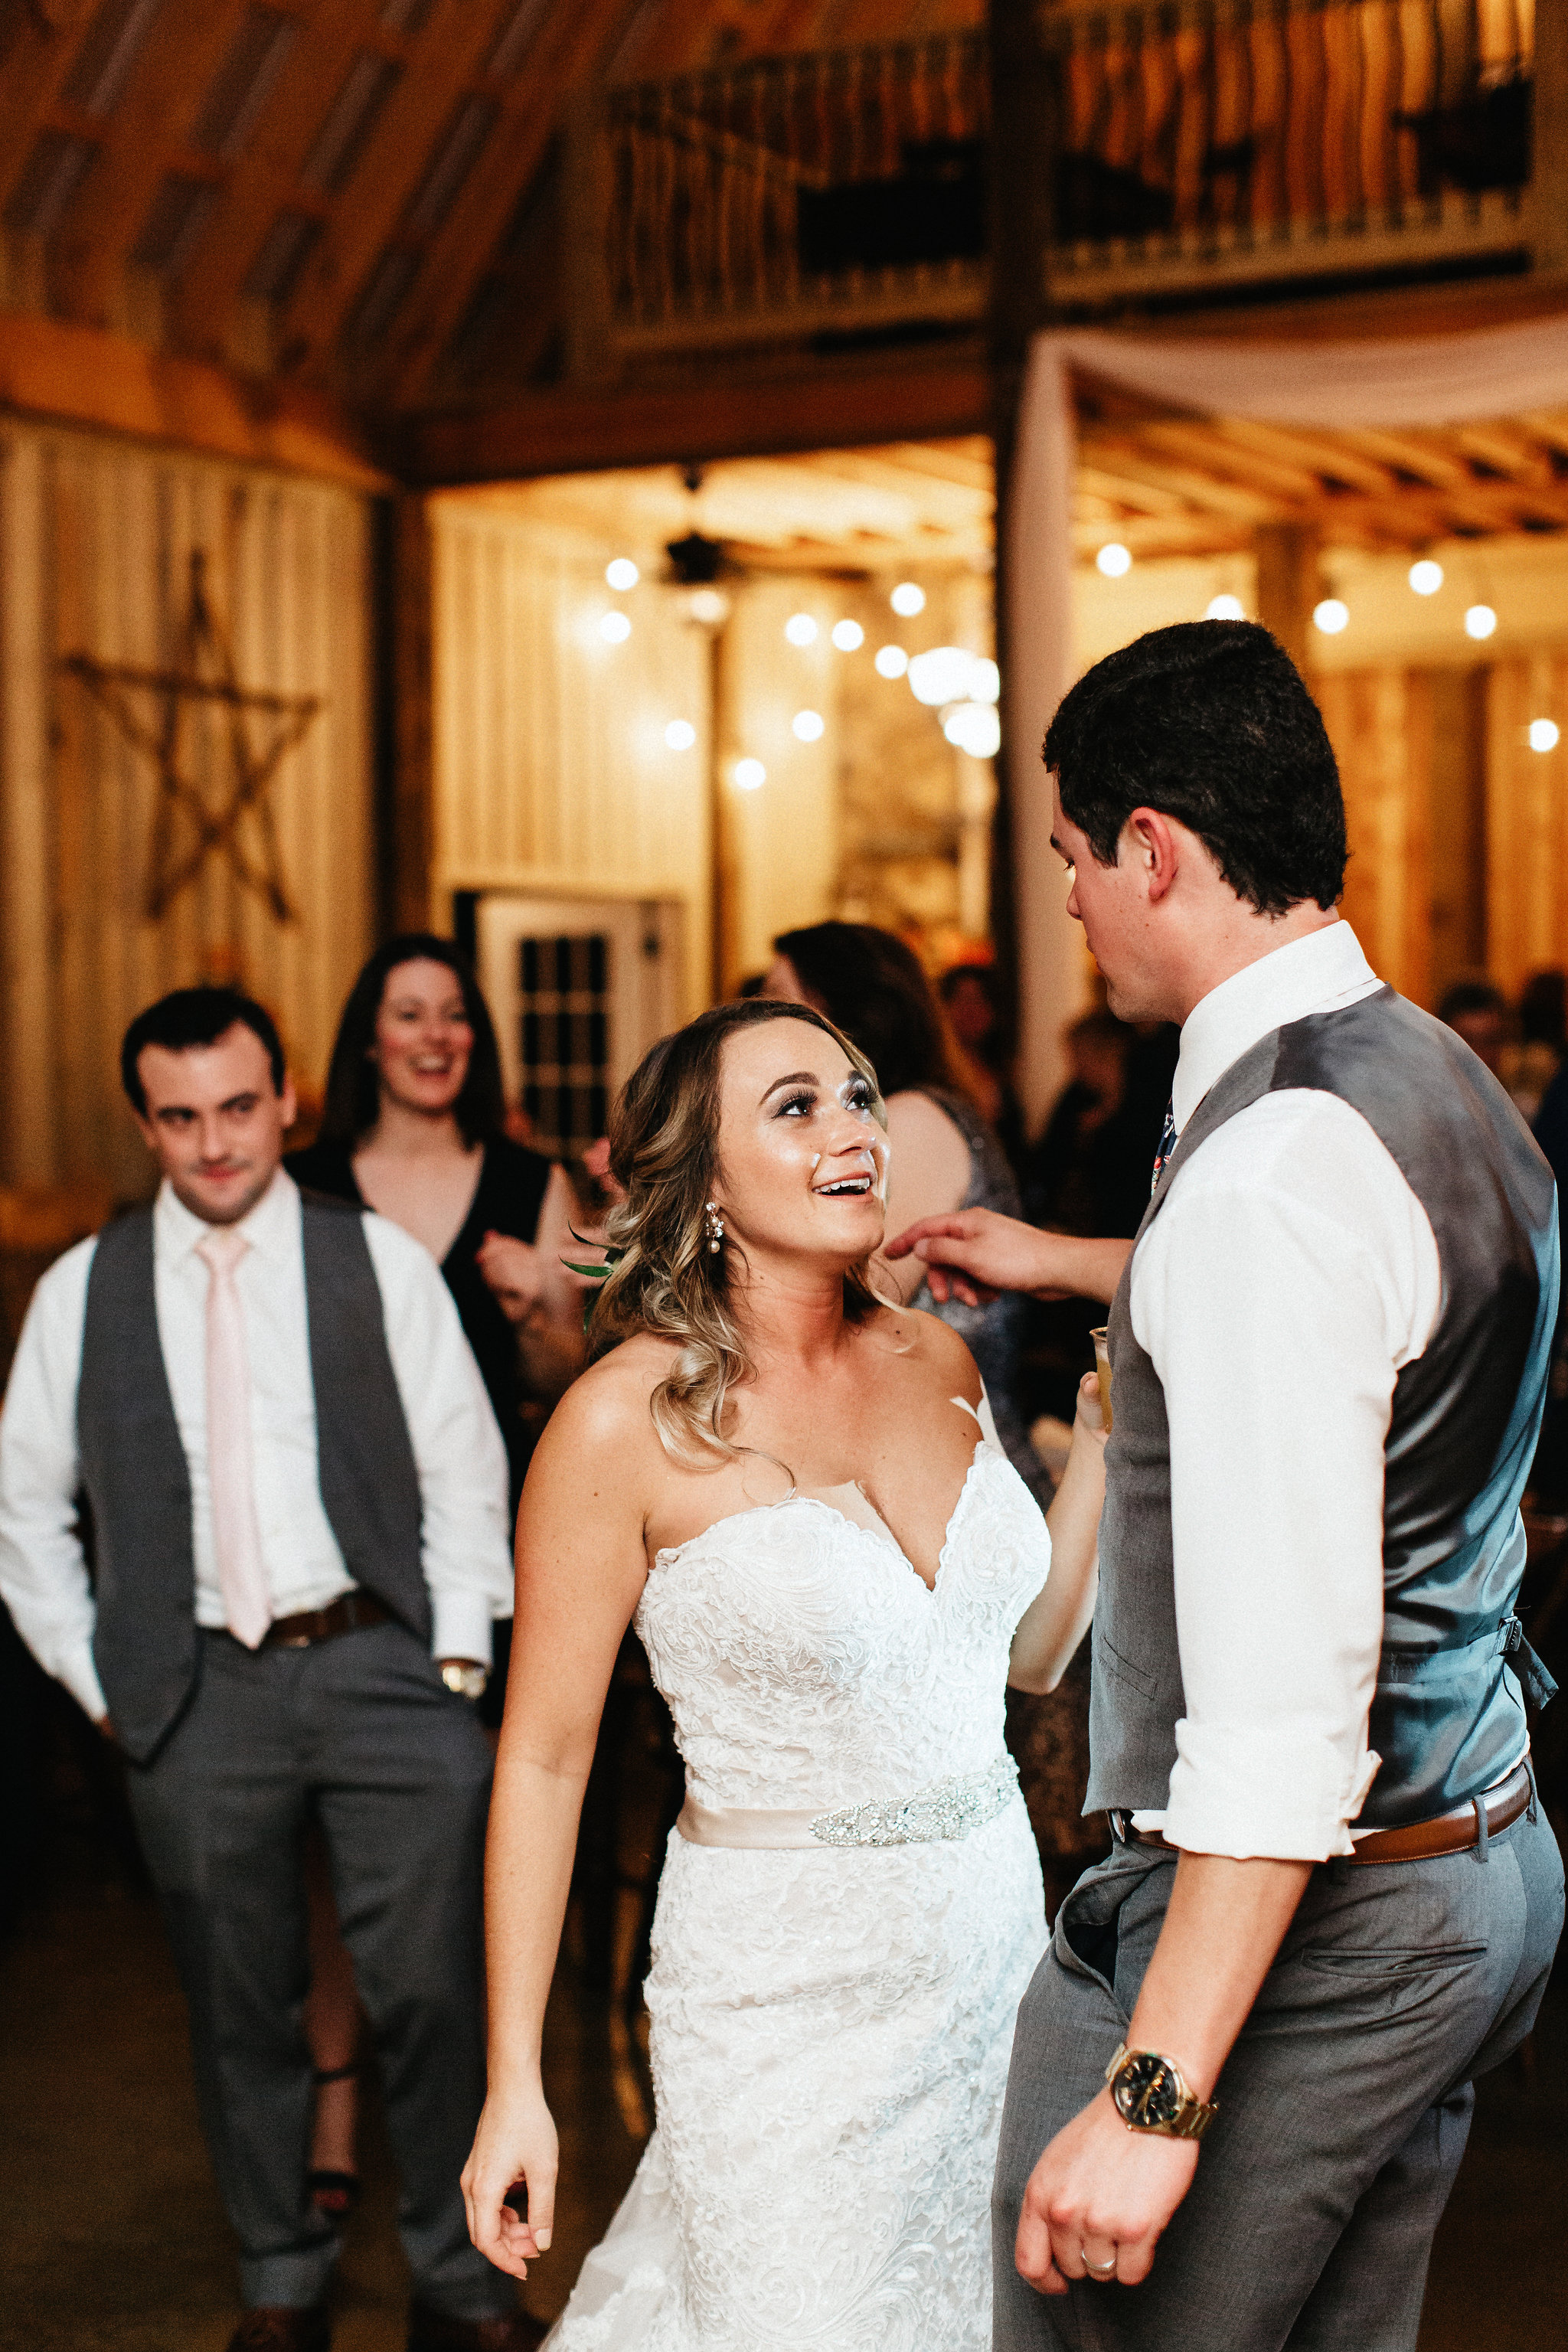 Ashley&NathanMarried2017-11-10at19.26.51PM57.jpg